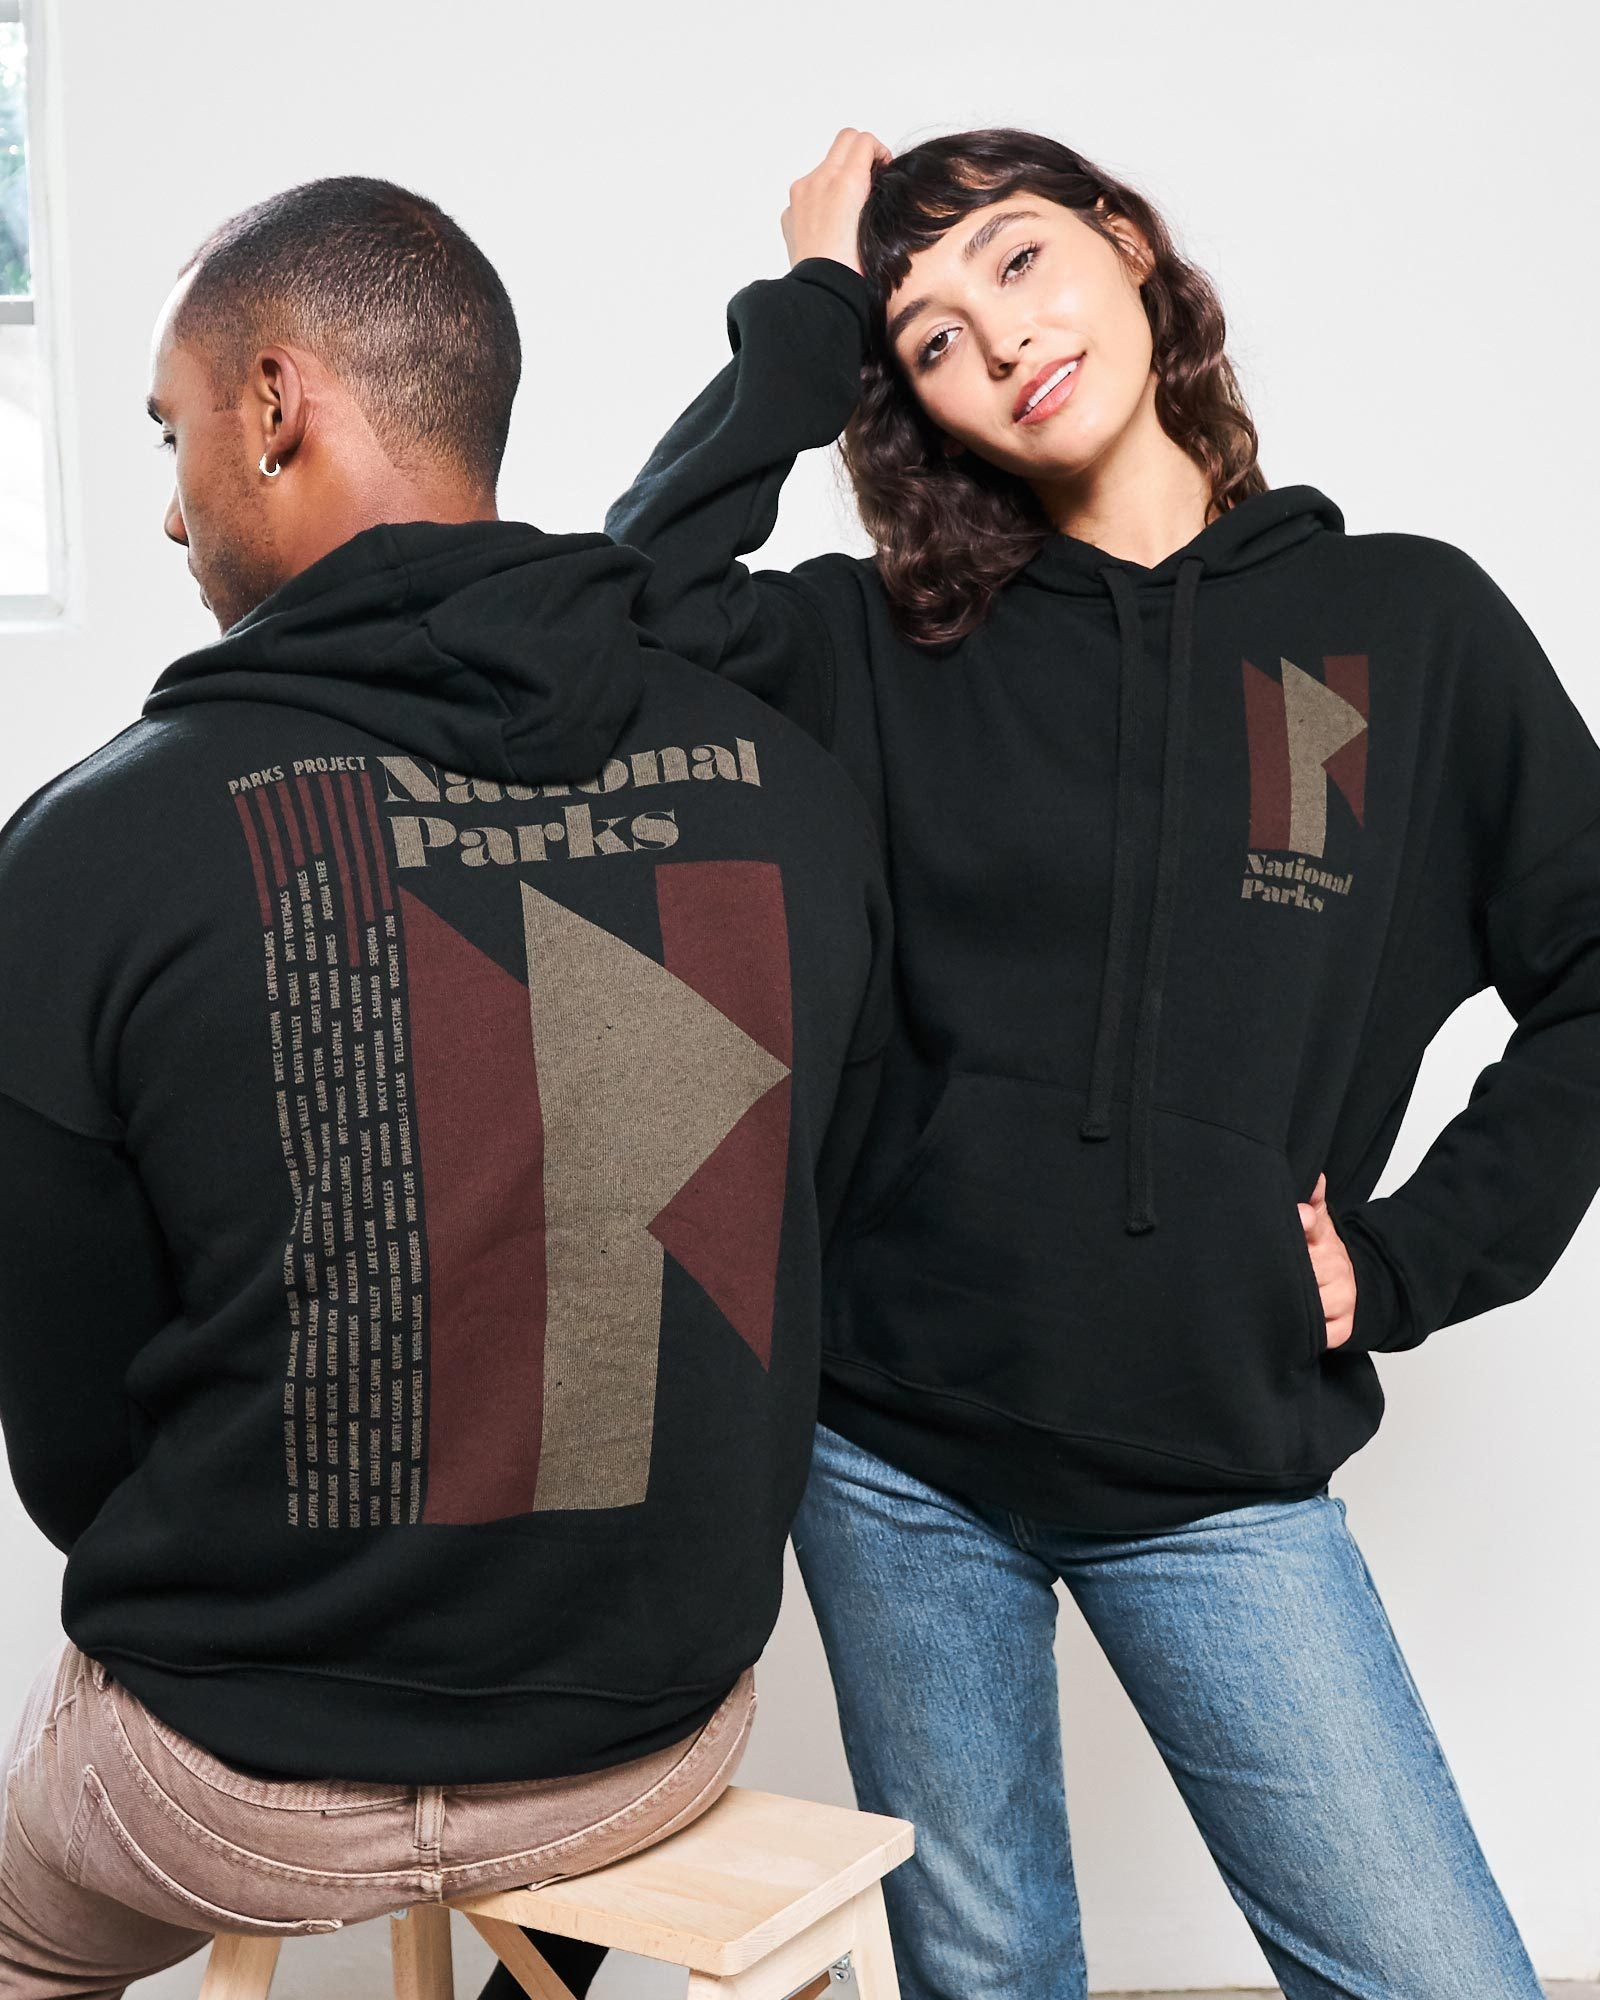 NP All National Parks Hoodie | Parks Project | National Parks Hoodies